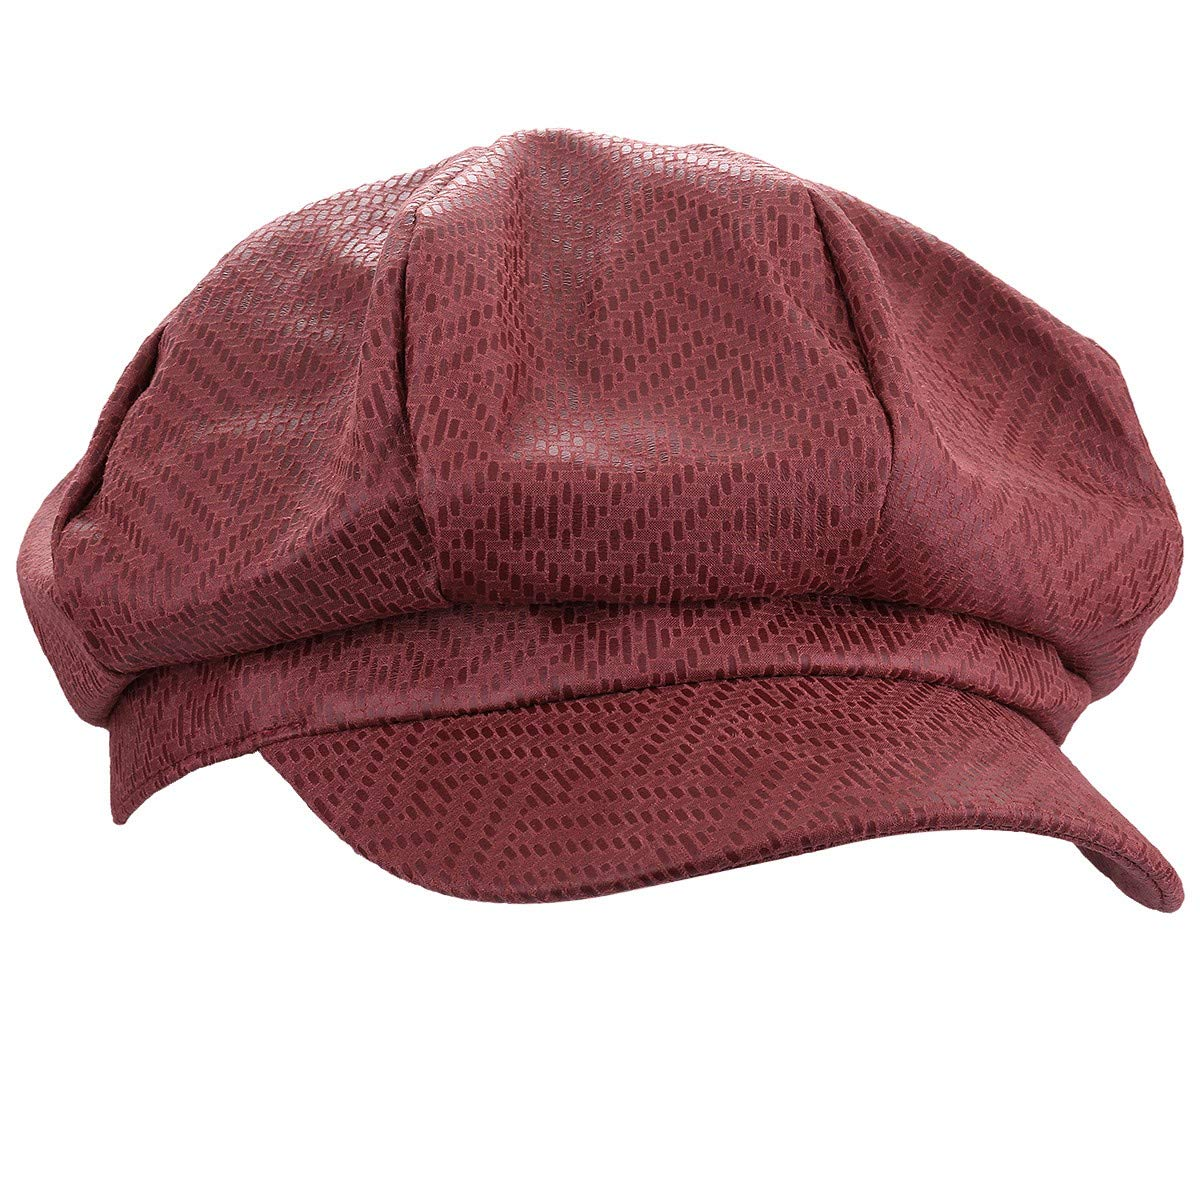 moonsix Newsboy Hat,Plain Cabbie Visor Beret Gatsby Ivy Caps for Women,Red(PU Leather Style 1)